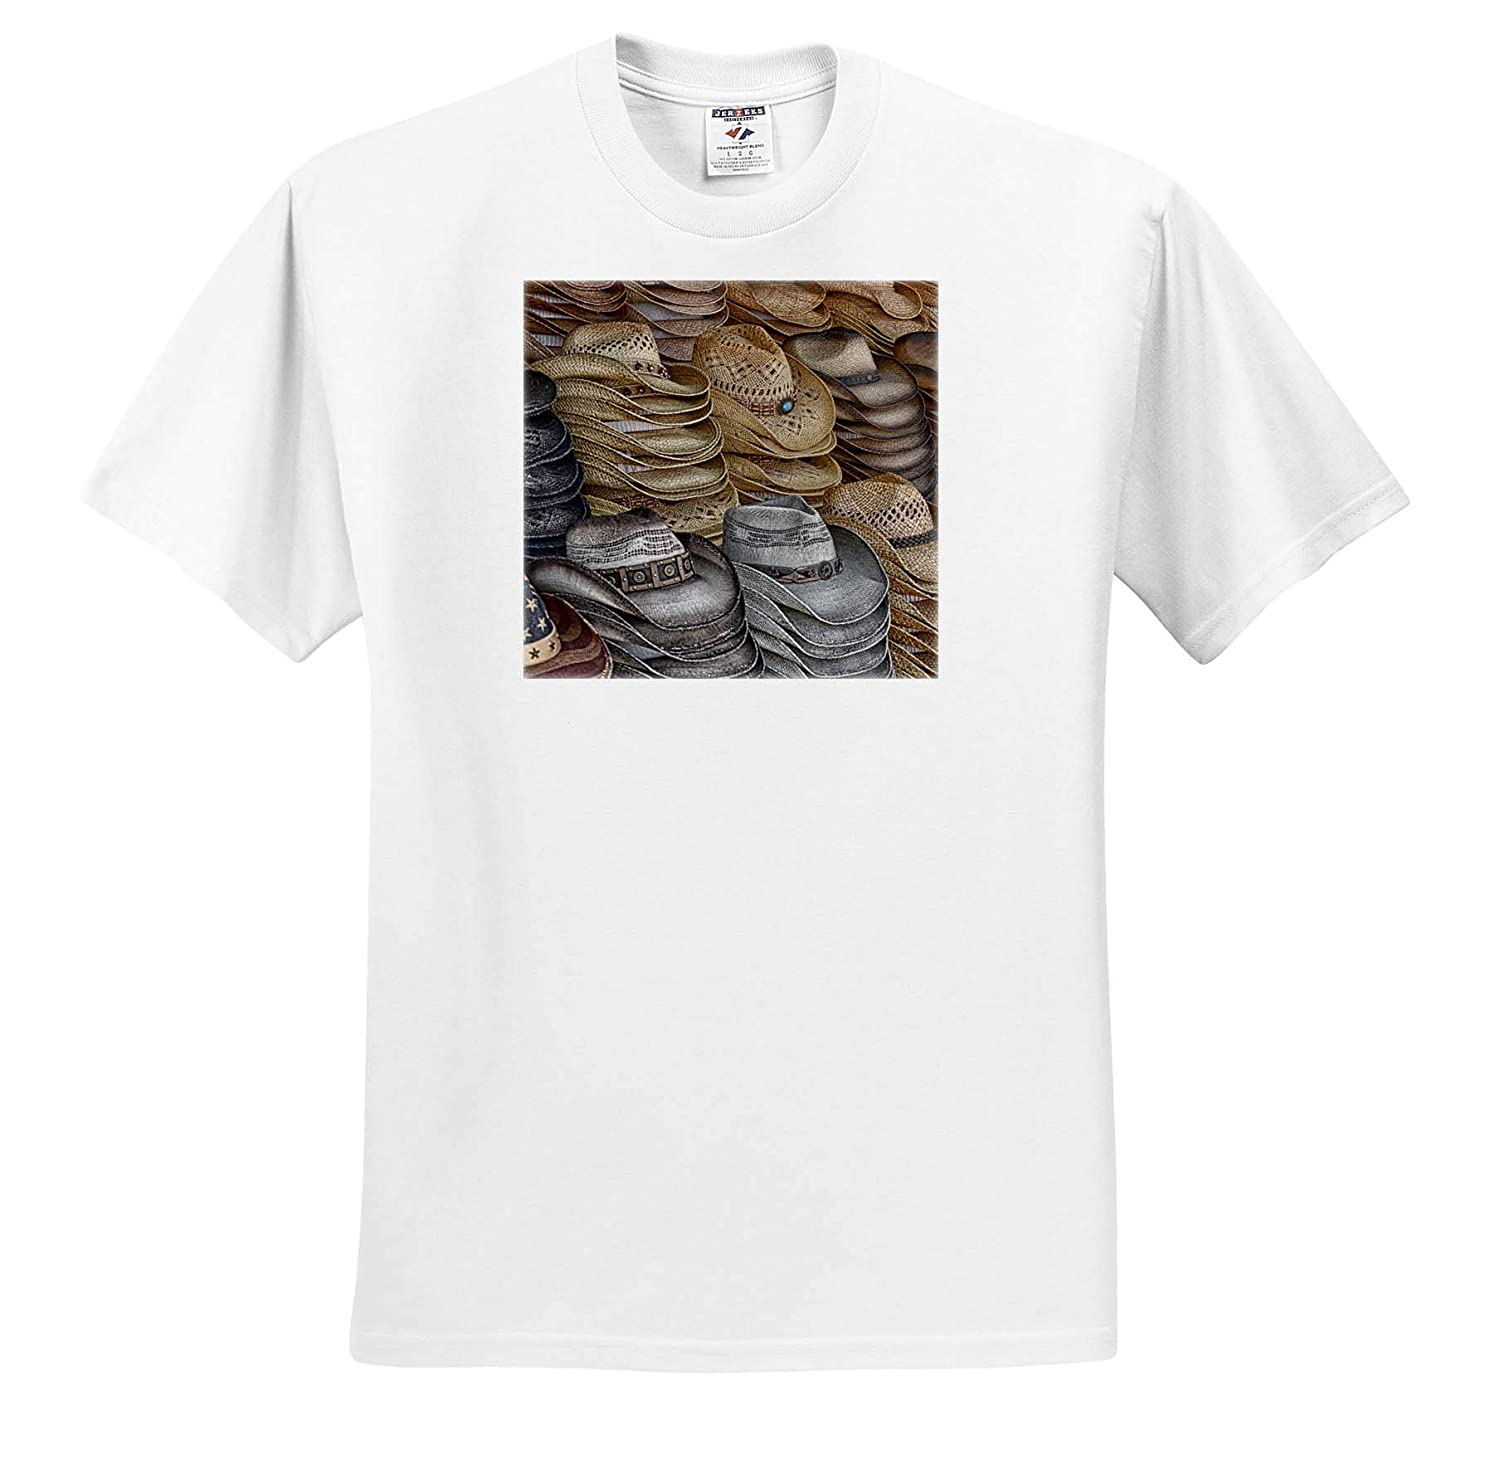 T-Shirts Stacks of Straw cowbody Western Hats 3dRose Susans Zoo Crew Scenery